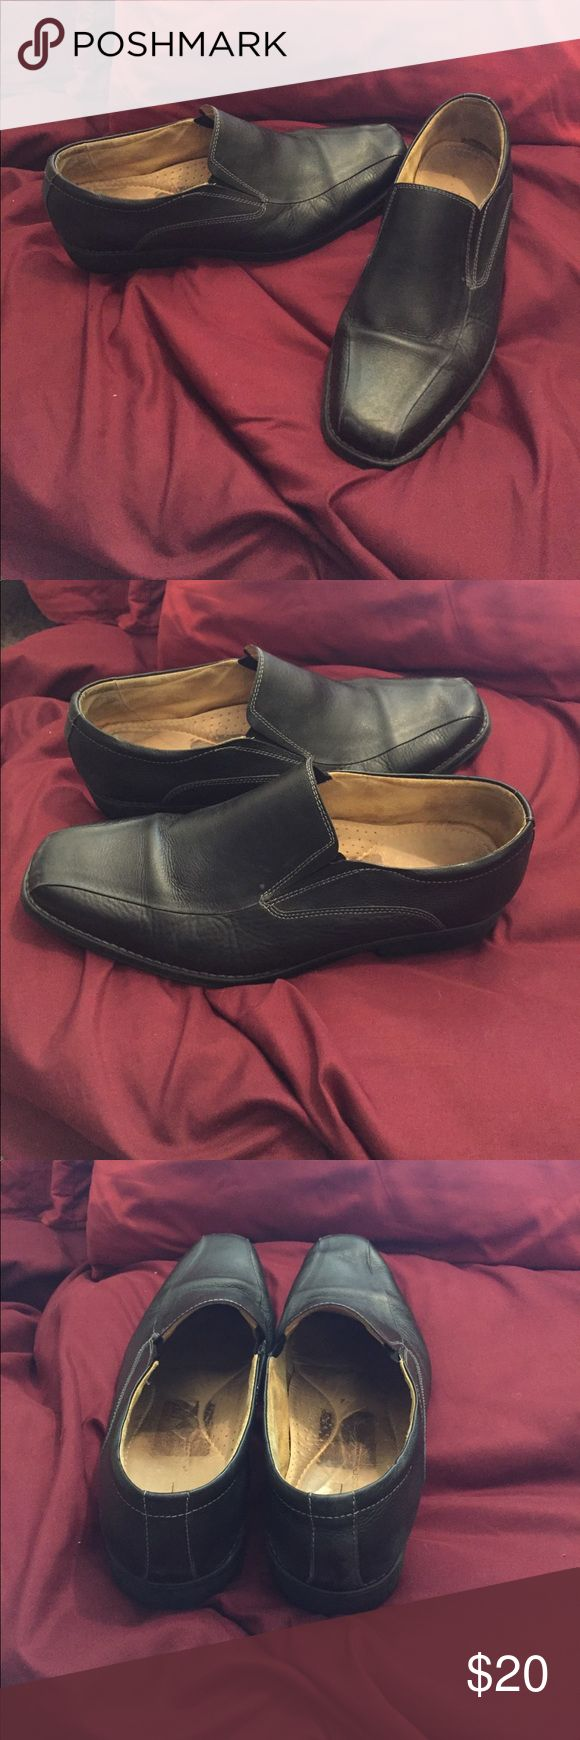 sandro moscoloni soft leather shoes sandro moscoloni soft black leather men's dress up or casual shoes sandro moscoloni Shoes Loafers & Slip-Ons